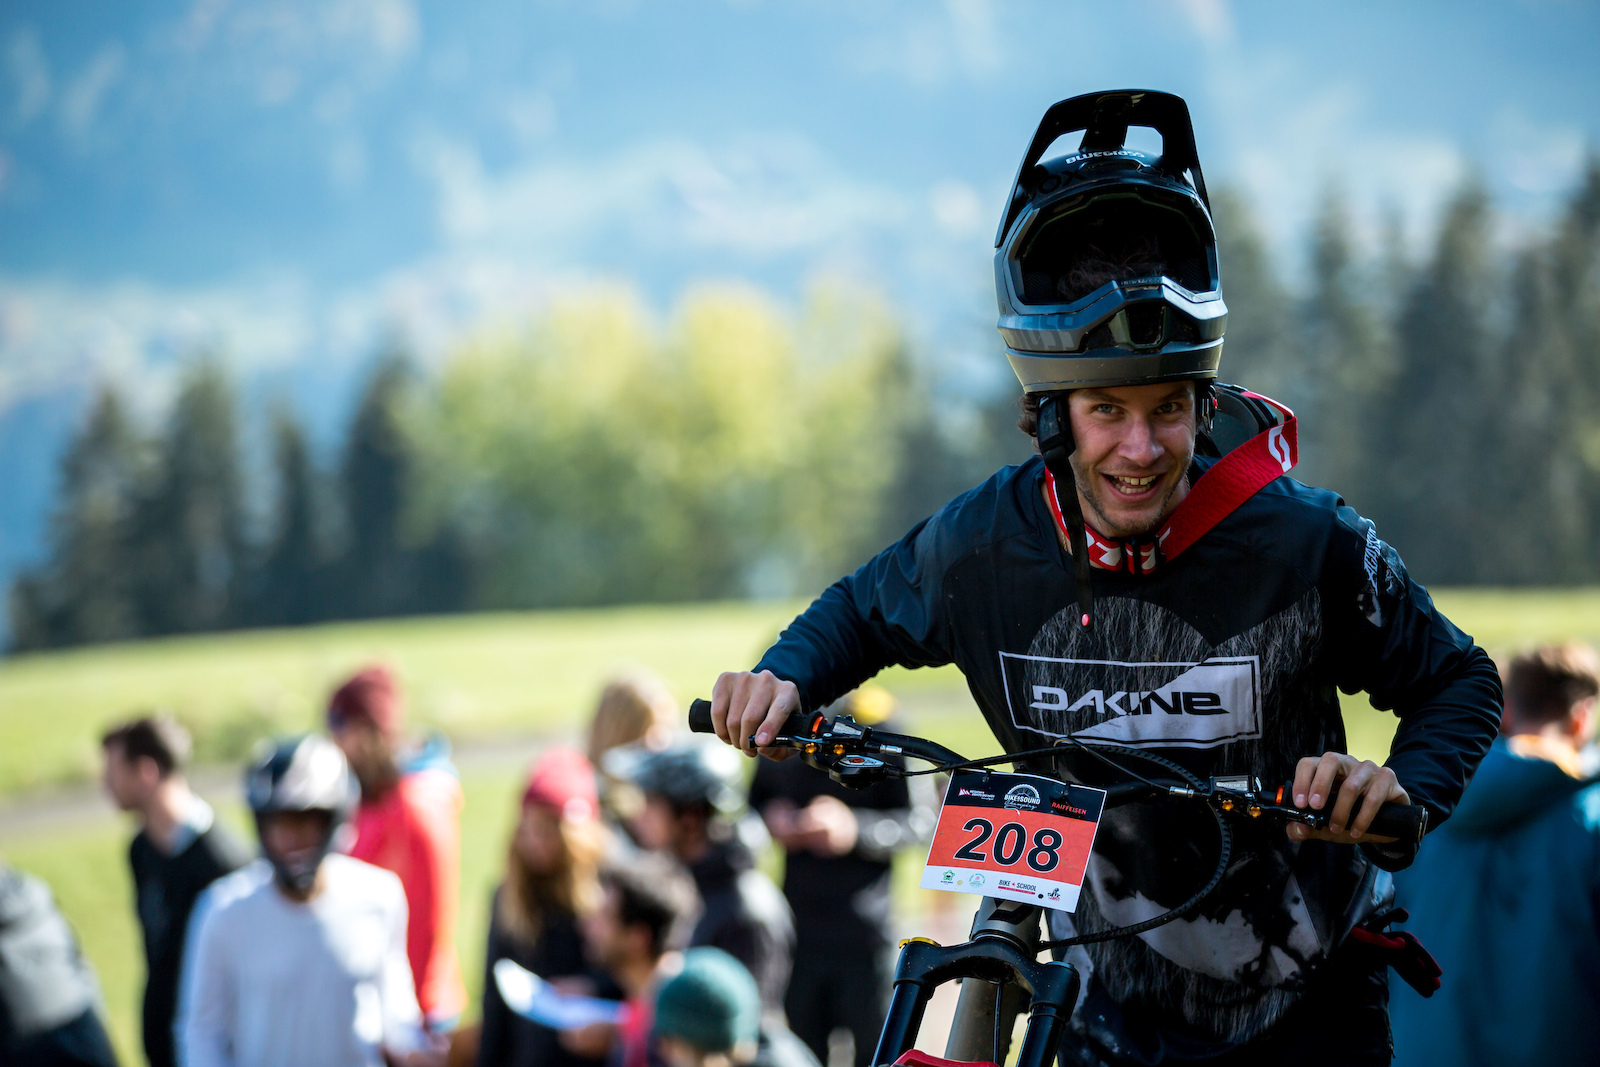 2020 Morgins Dual Slalom Photographer Jey Crunch